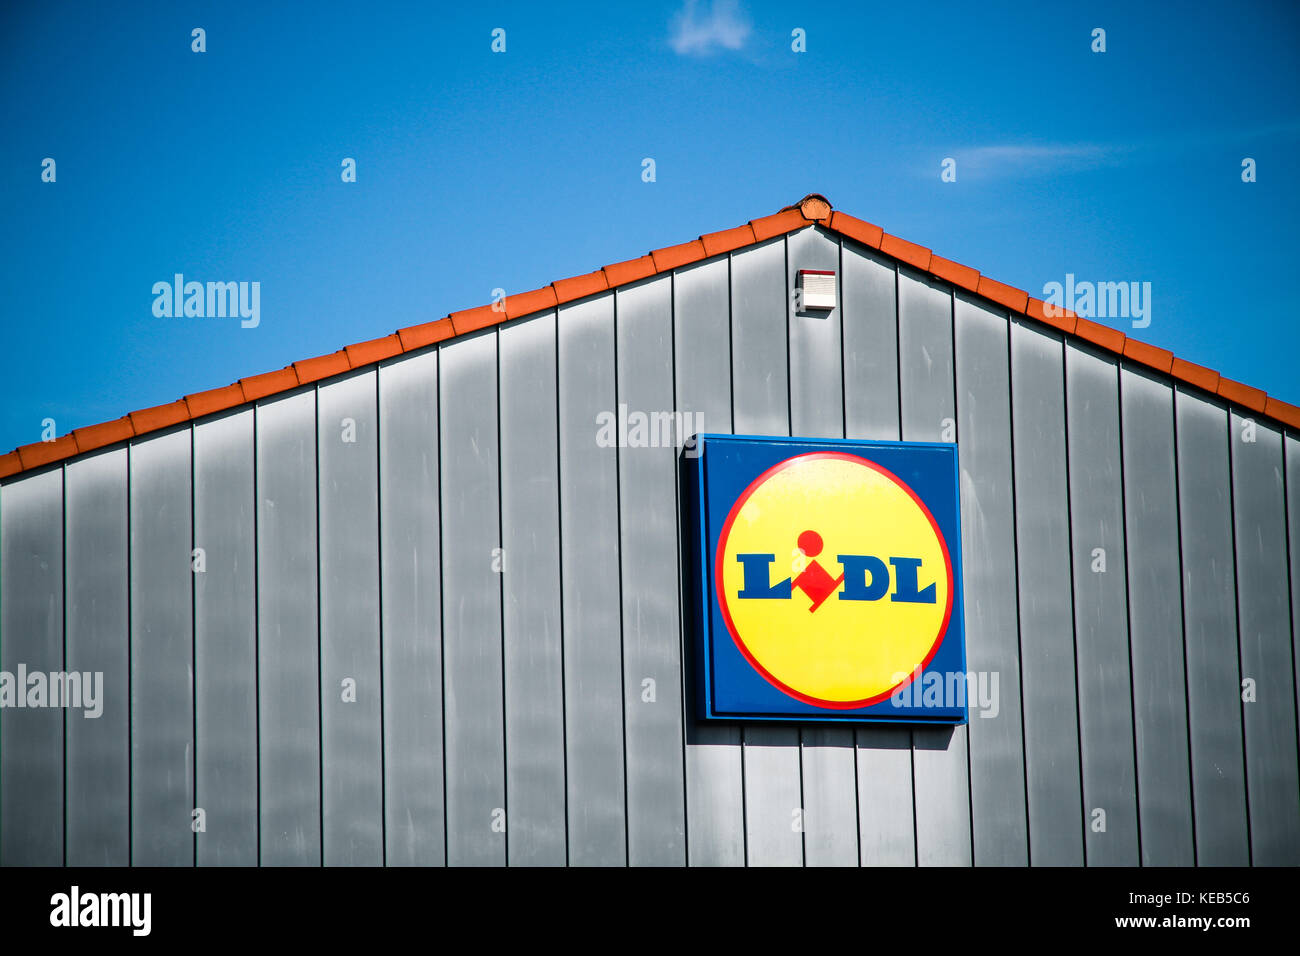 JUETERBOG, GERMANY - SEP 17, 2017: Detail on the facade at LIDL discount supermarket in Jueterbog, Teltow-Flaeming - Stock Image